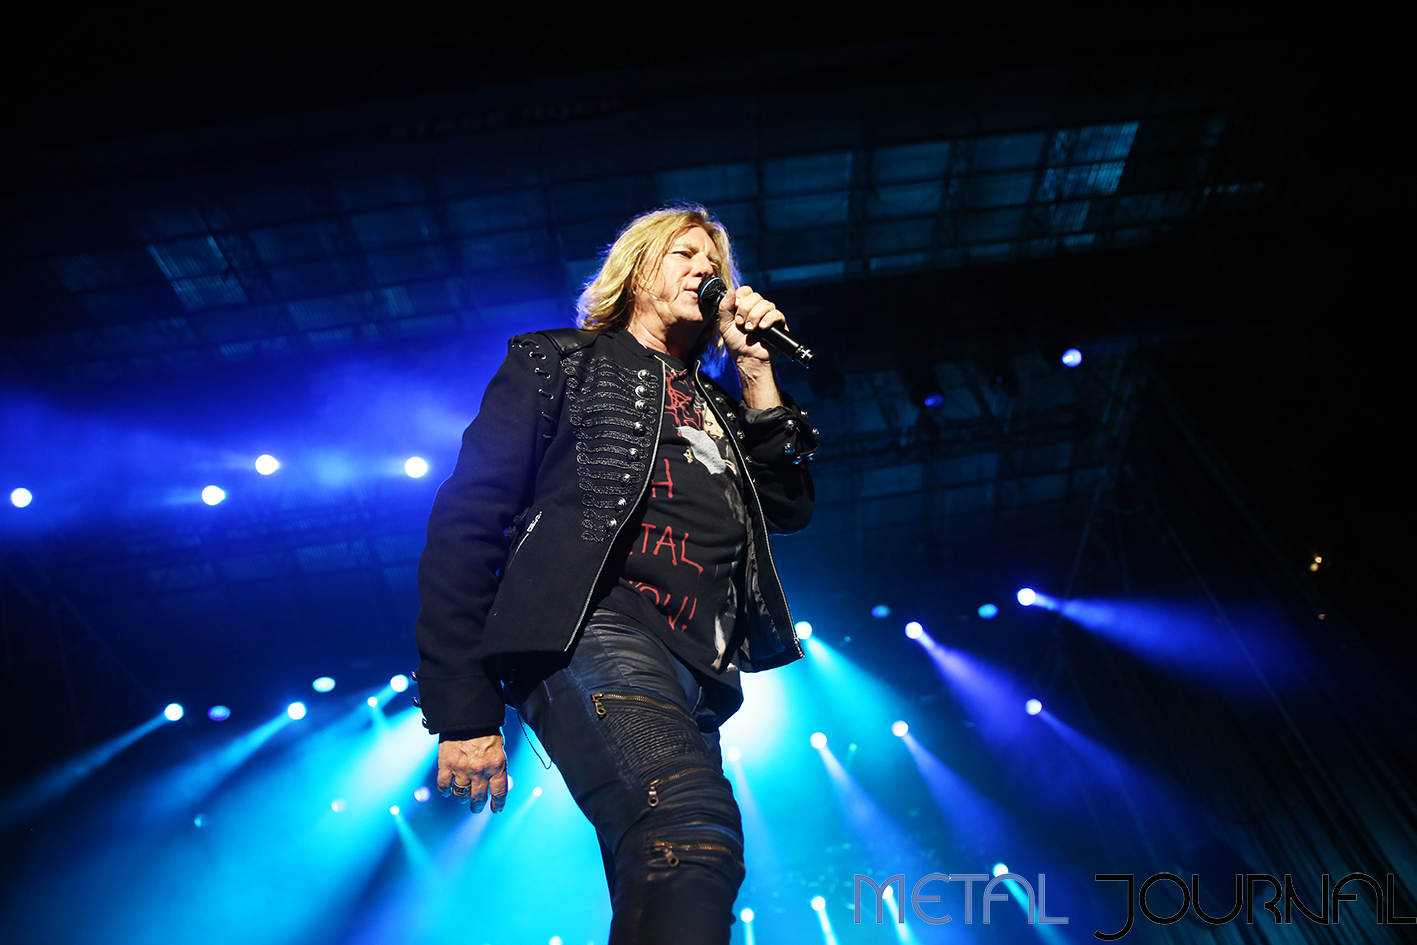 def leppard - metal journal rock fest barcelona 2019 pic 2